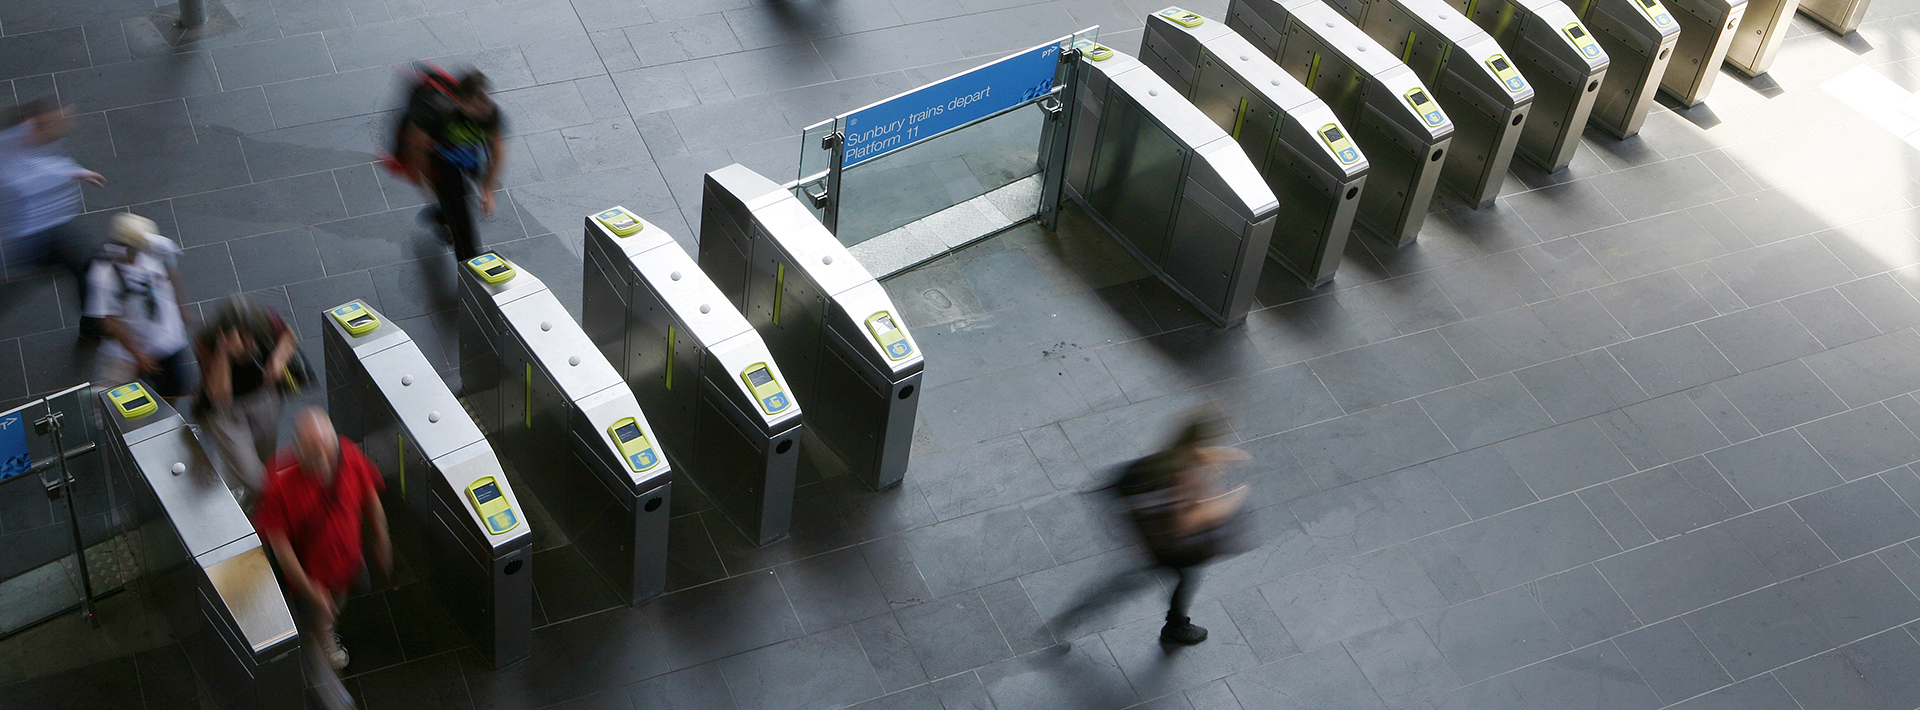 Metro Products - ticket gates and automated fare collection